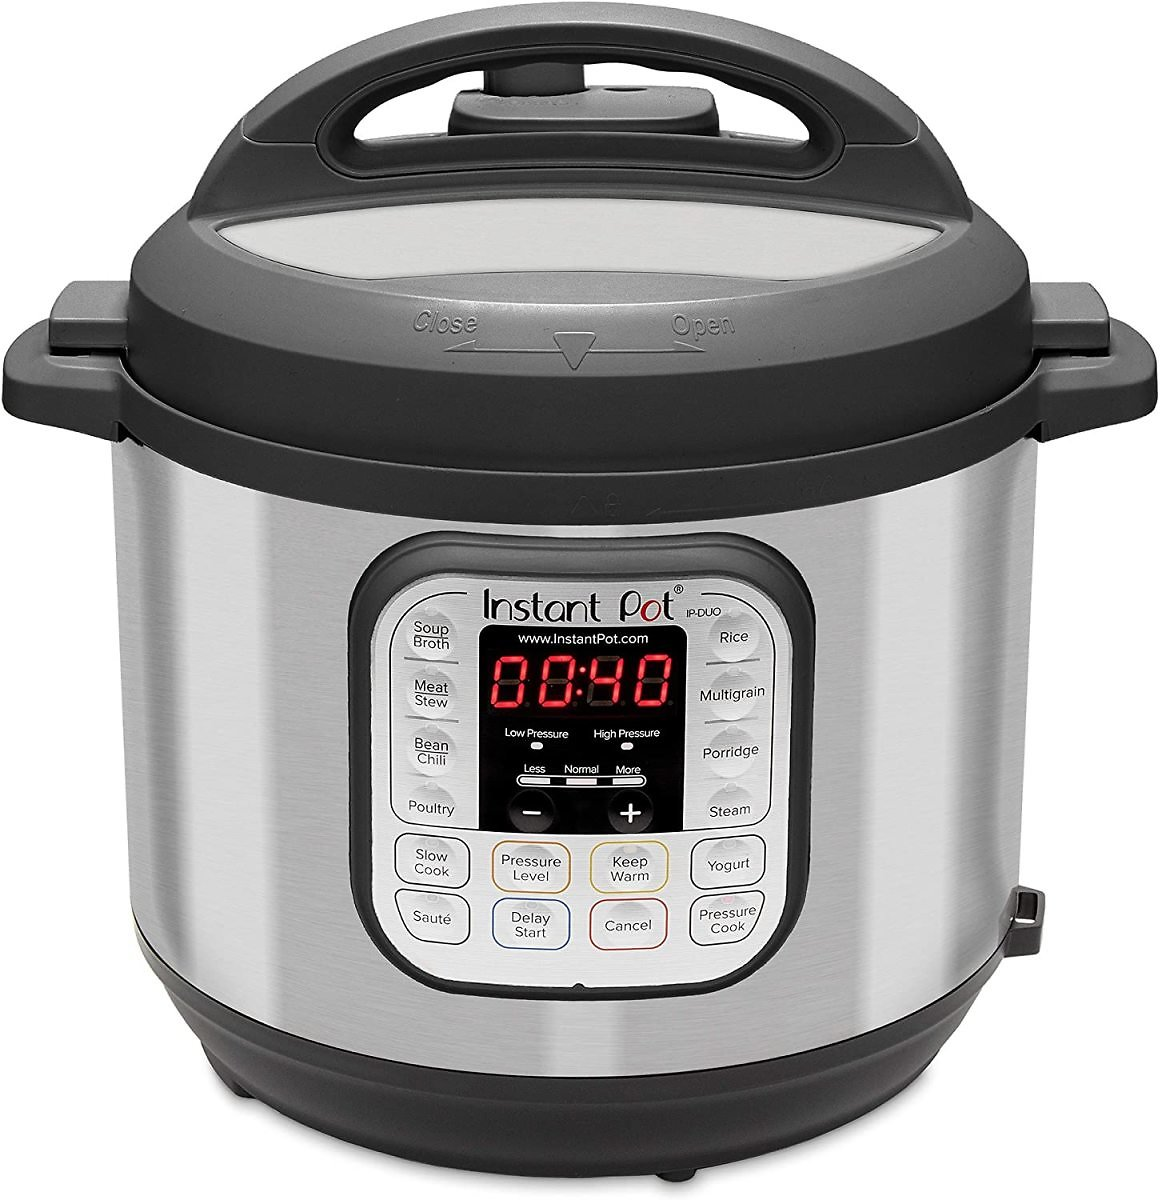 21% Discount - Instant Pot Duo 7-in-1 Electric Pressure Cooker (Sterilizer, Rice Cooker, Steamer, Saute and Warmer